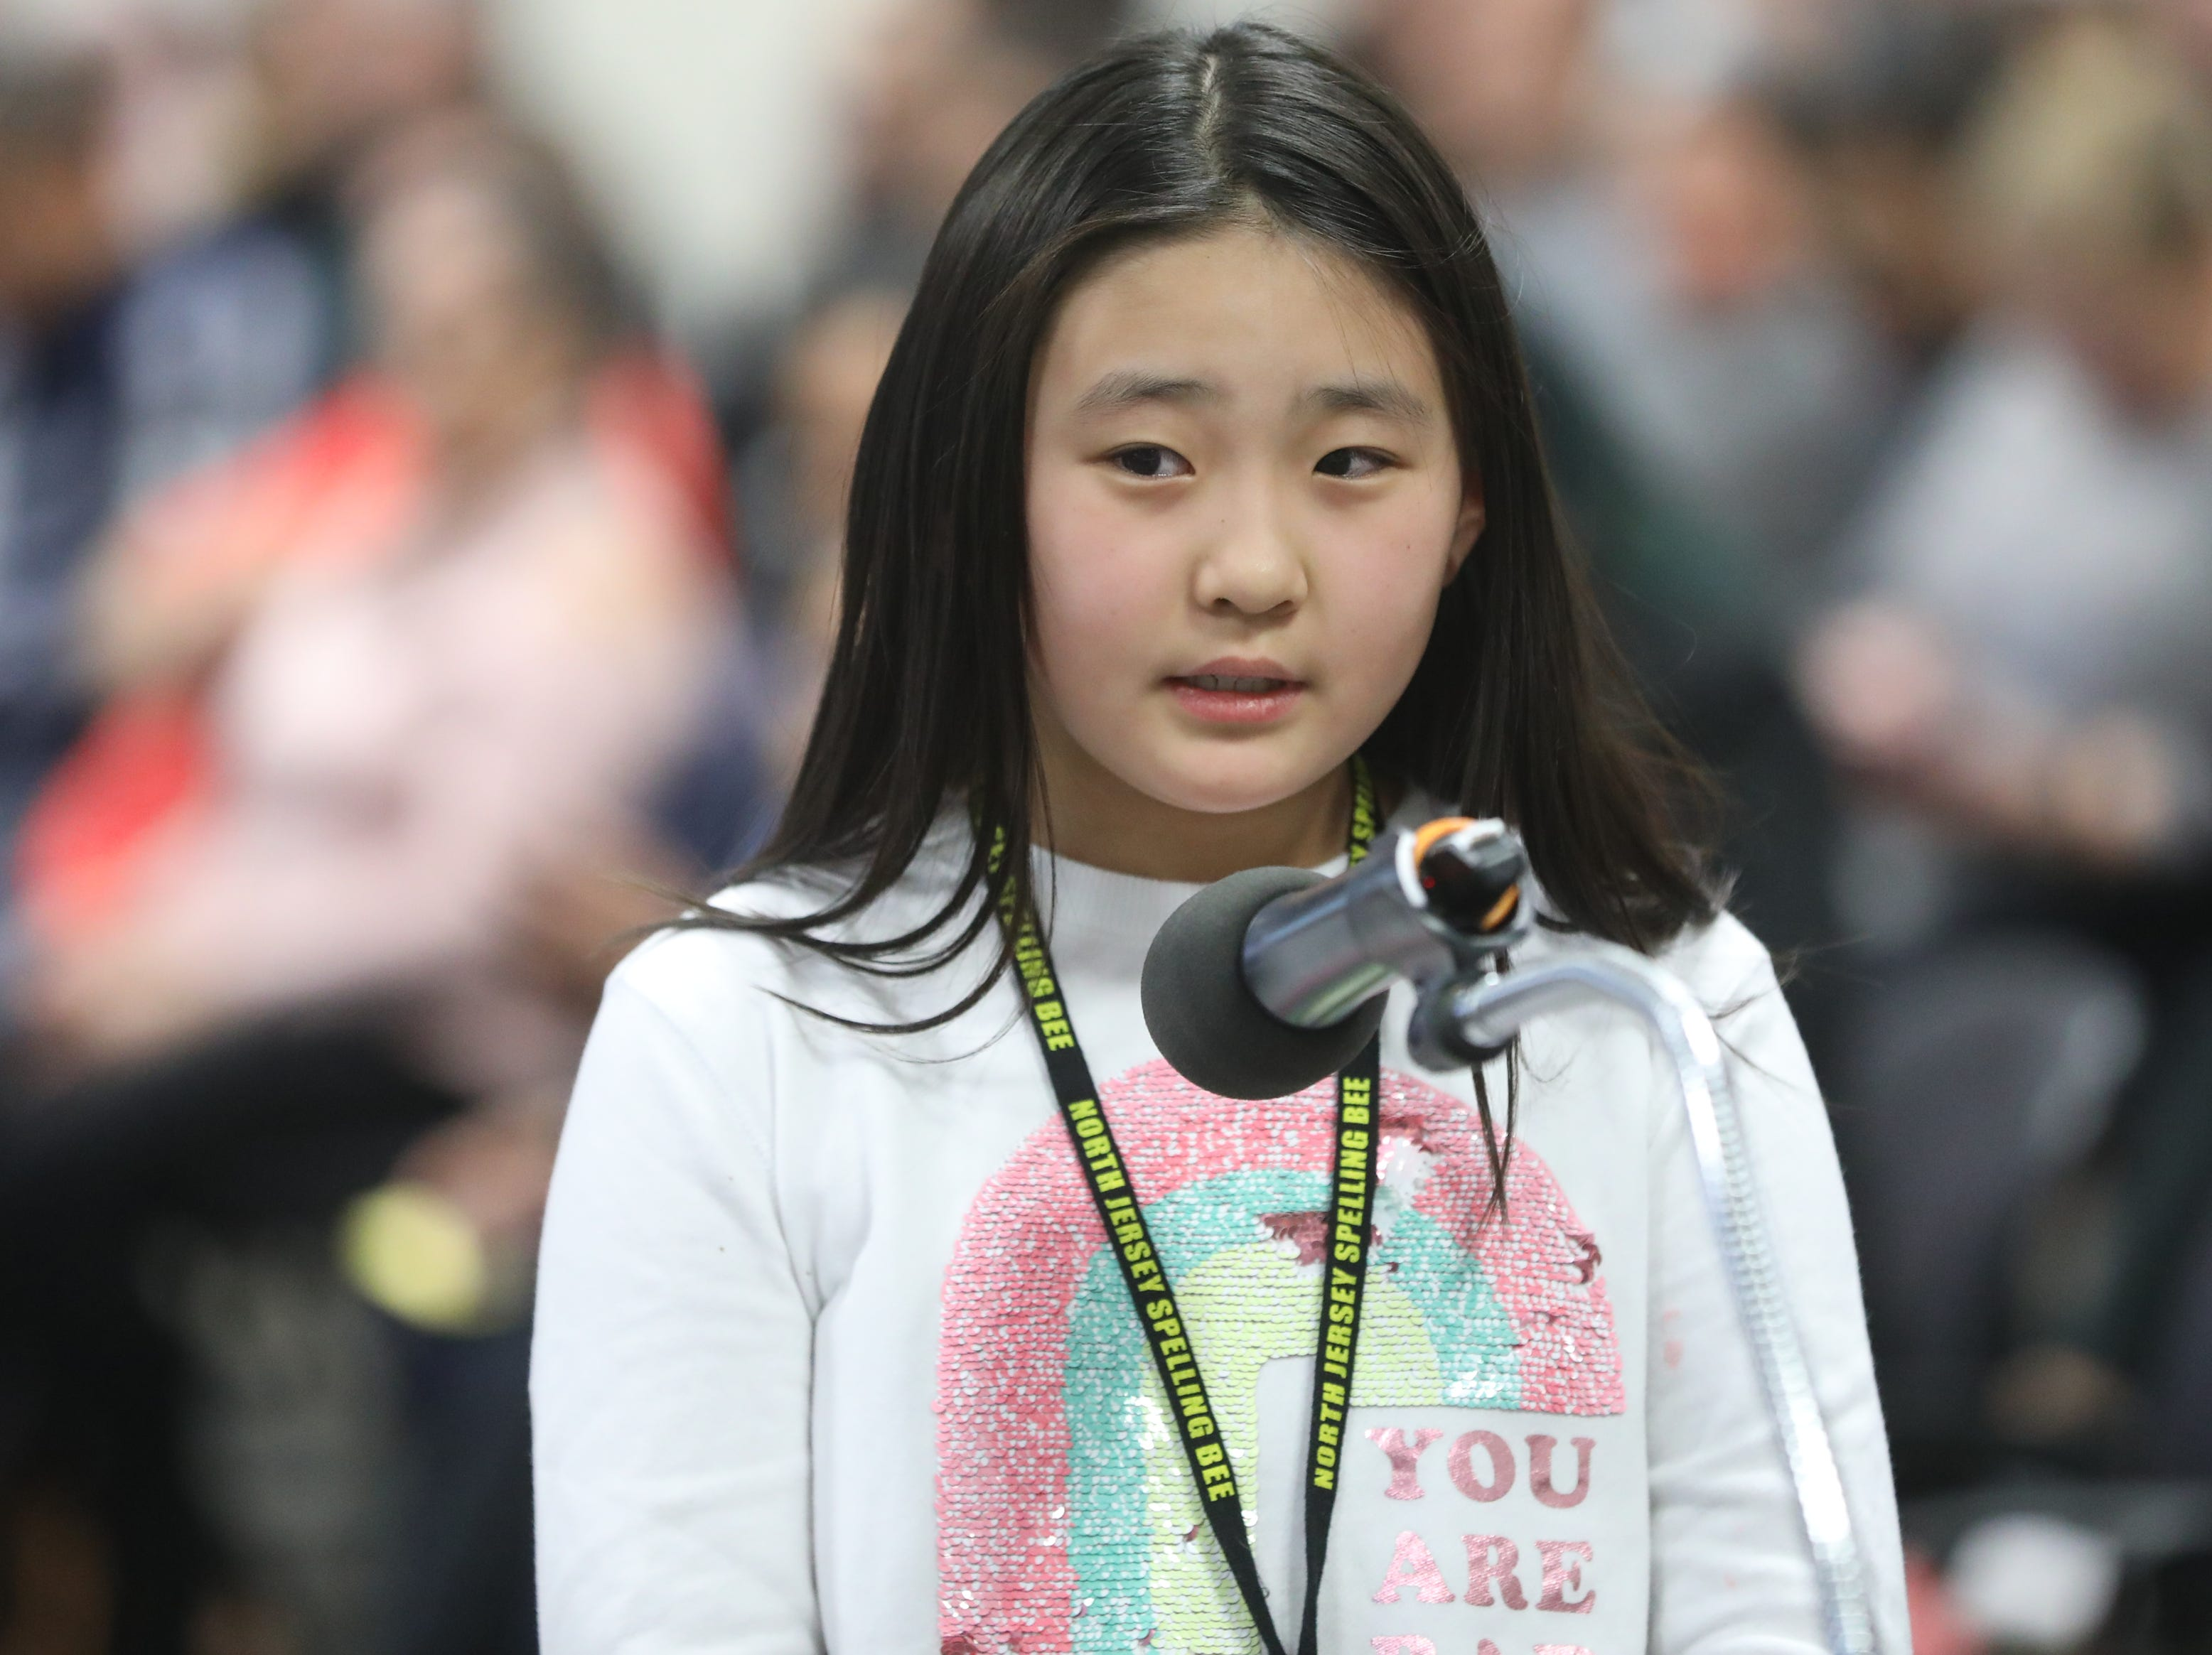 Gia Kim, of Paramus, competes in the first round of the 2019 North Jersey Spelling Bee, in Paramus. Thursday, March 14, 2019